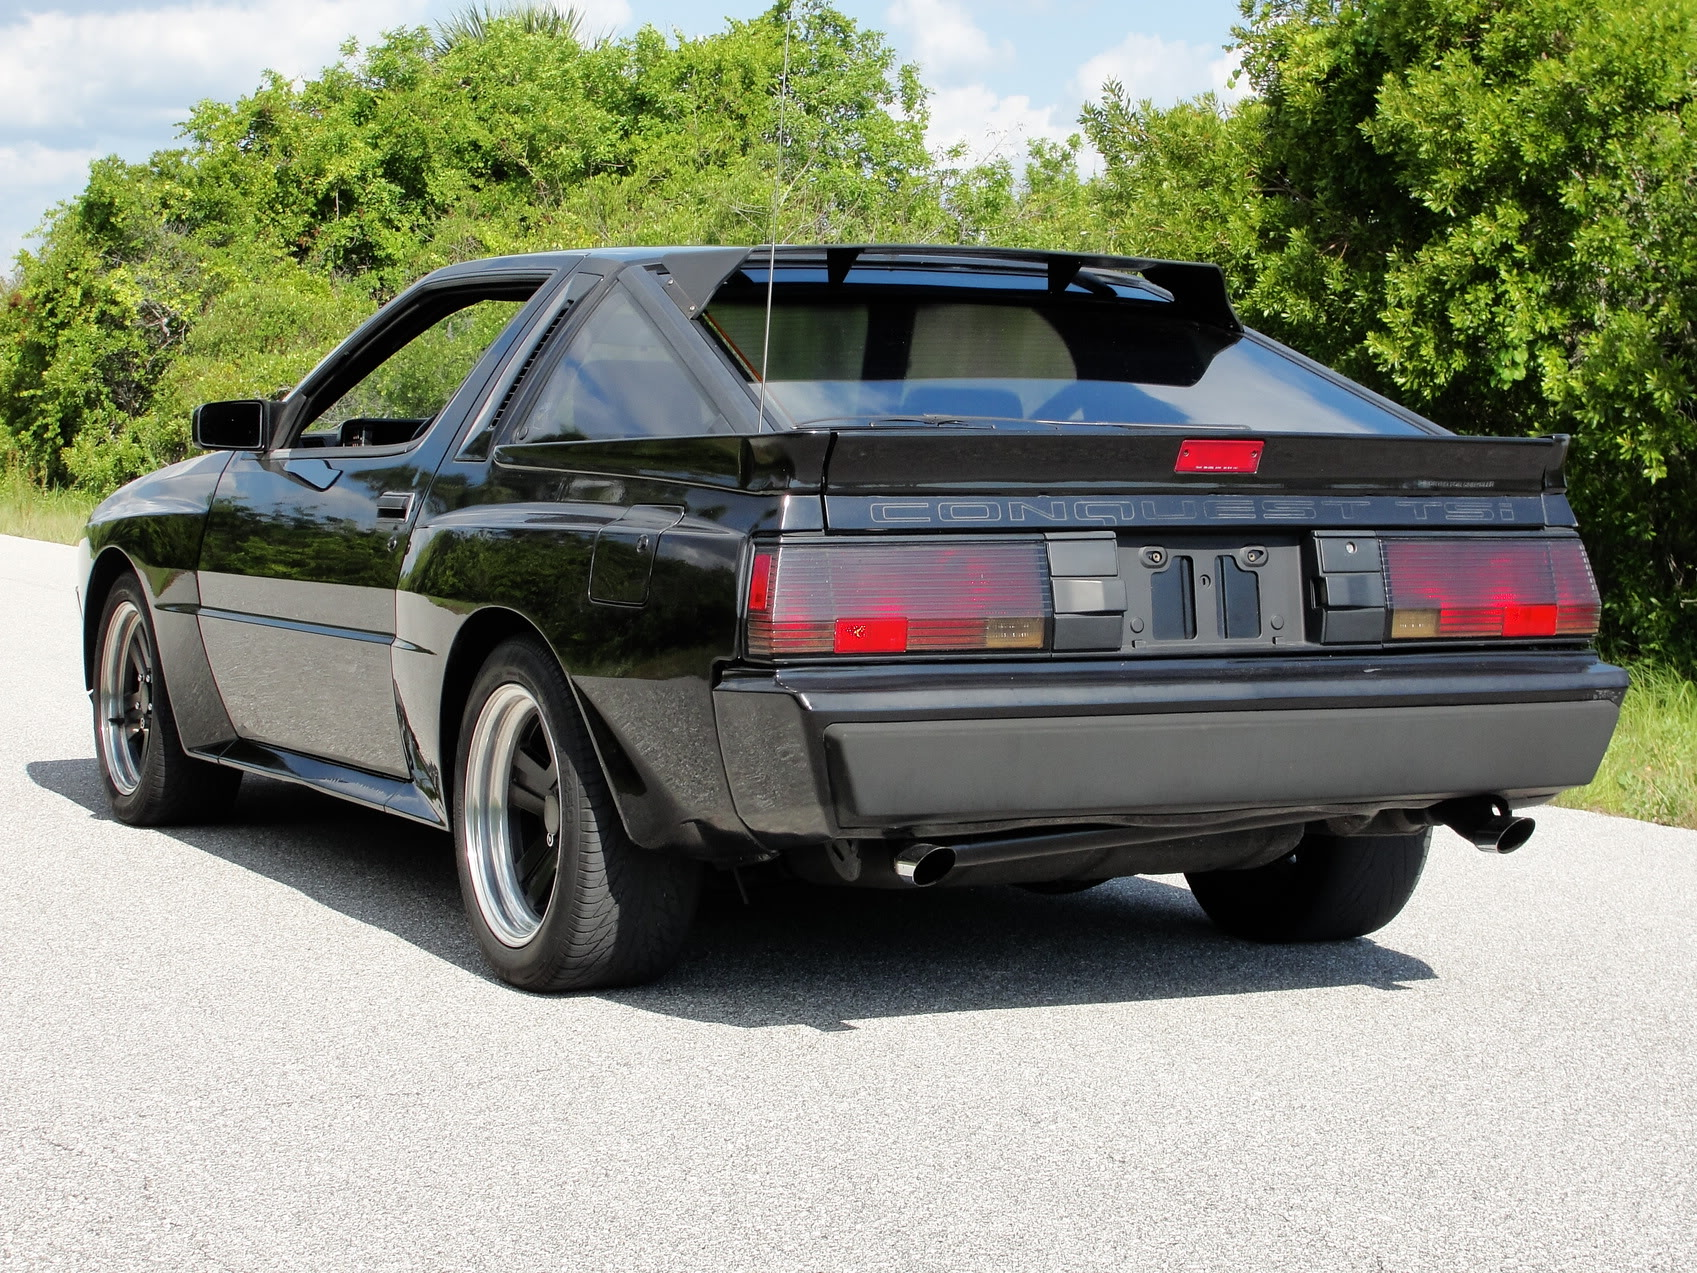 Chrysler Conquest #7